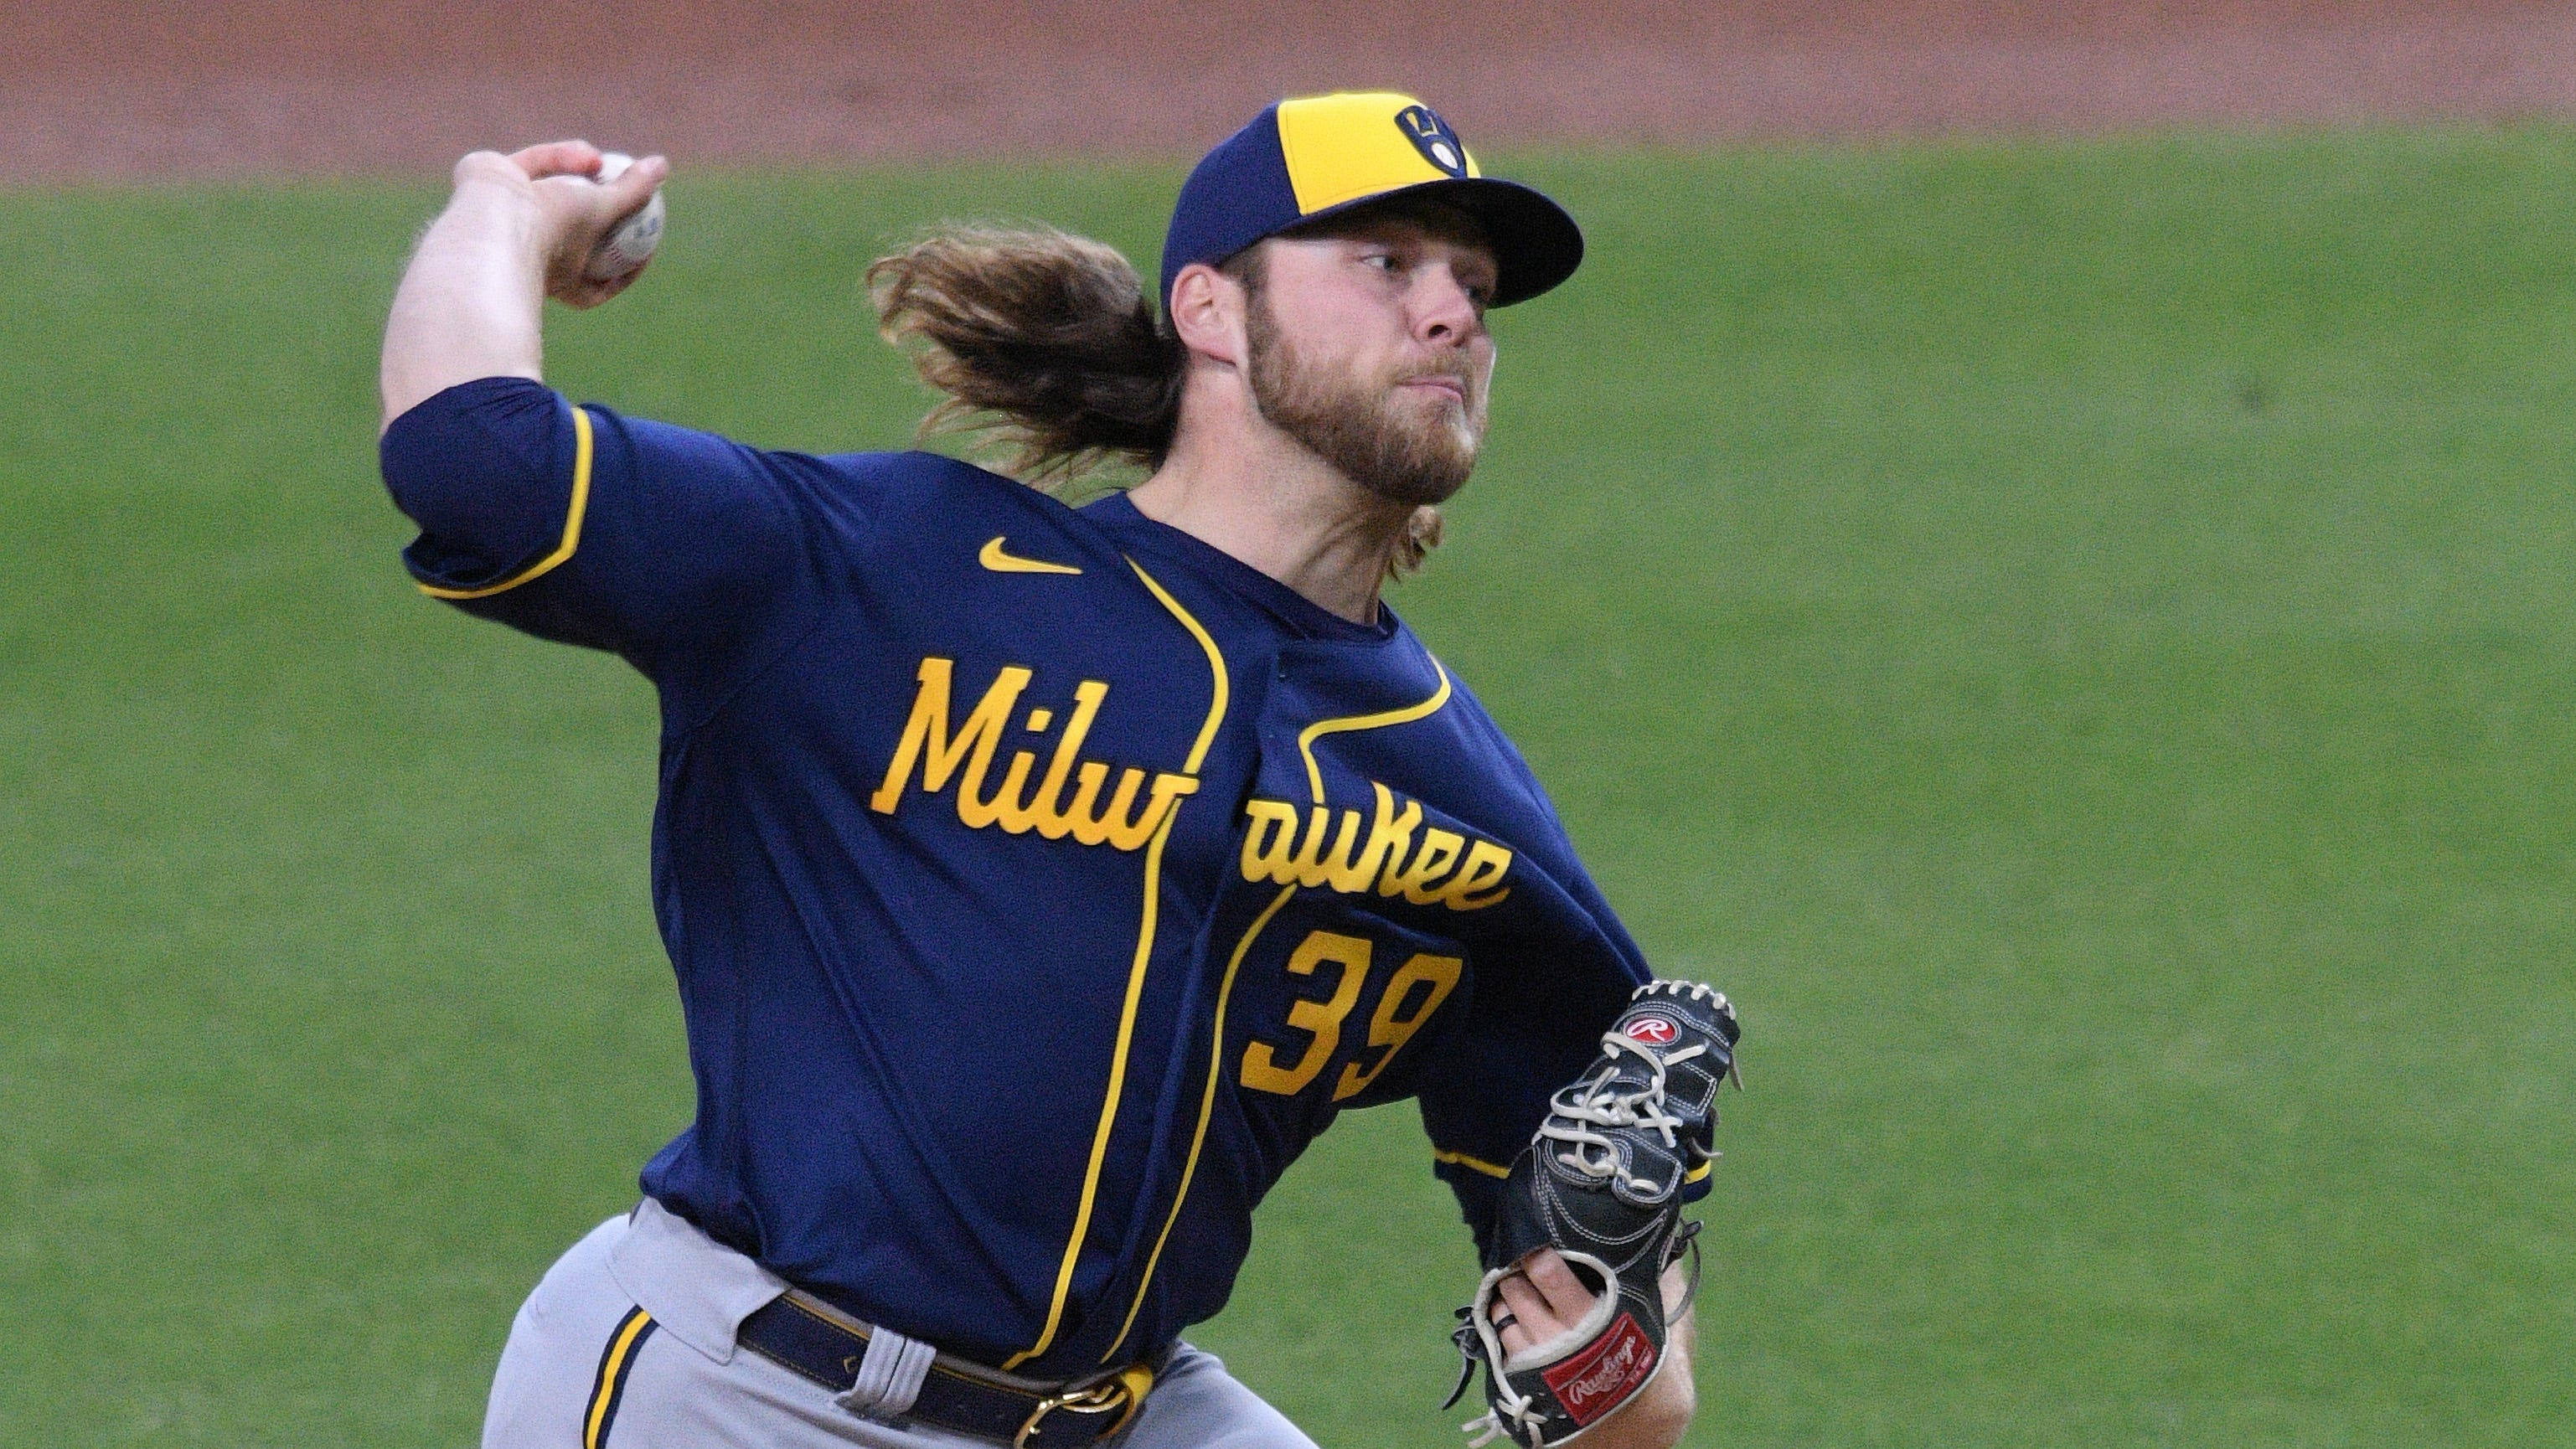 Brewers starter Corbin Burnes sets MLB record for most strikeouts without a walk to start a season